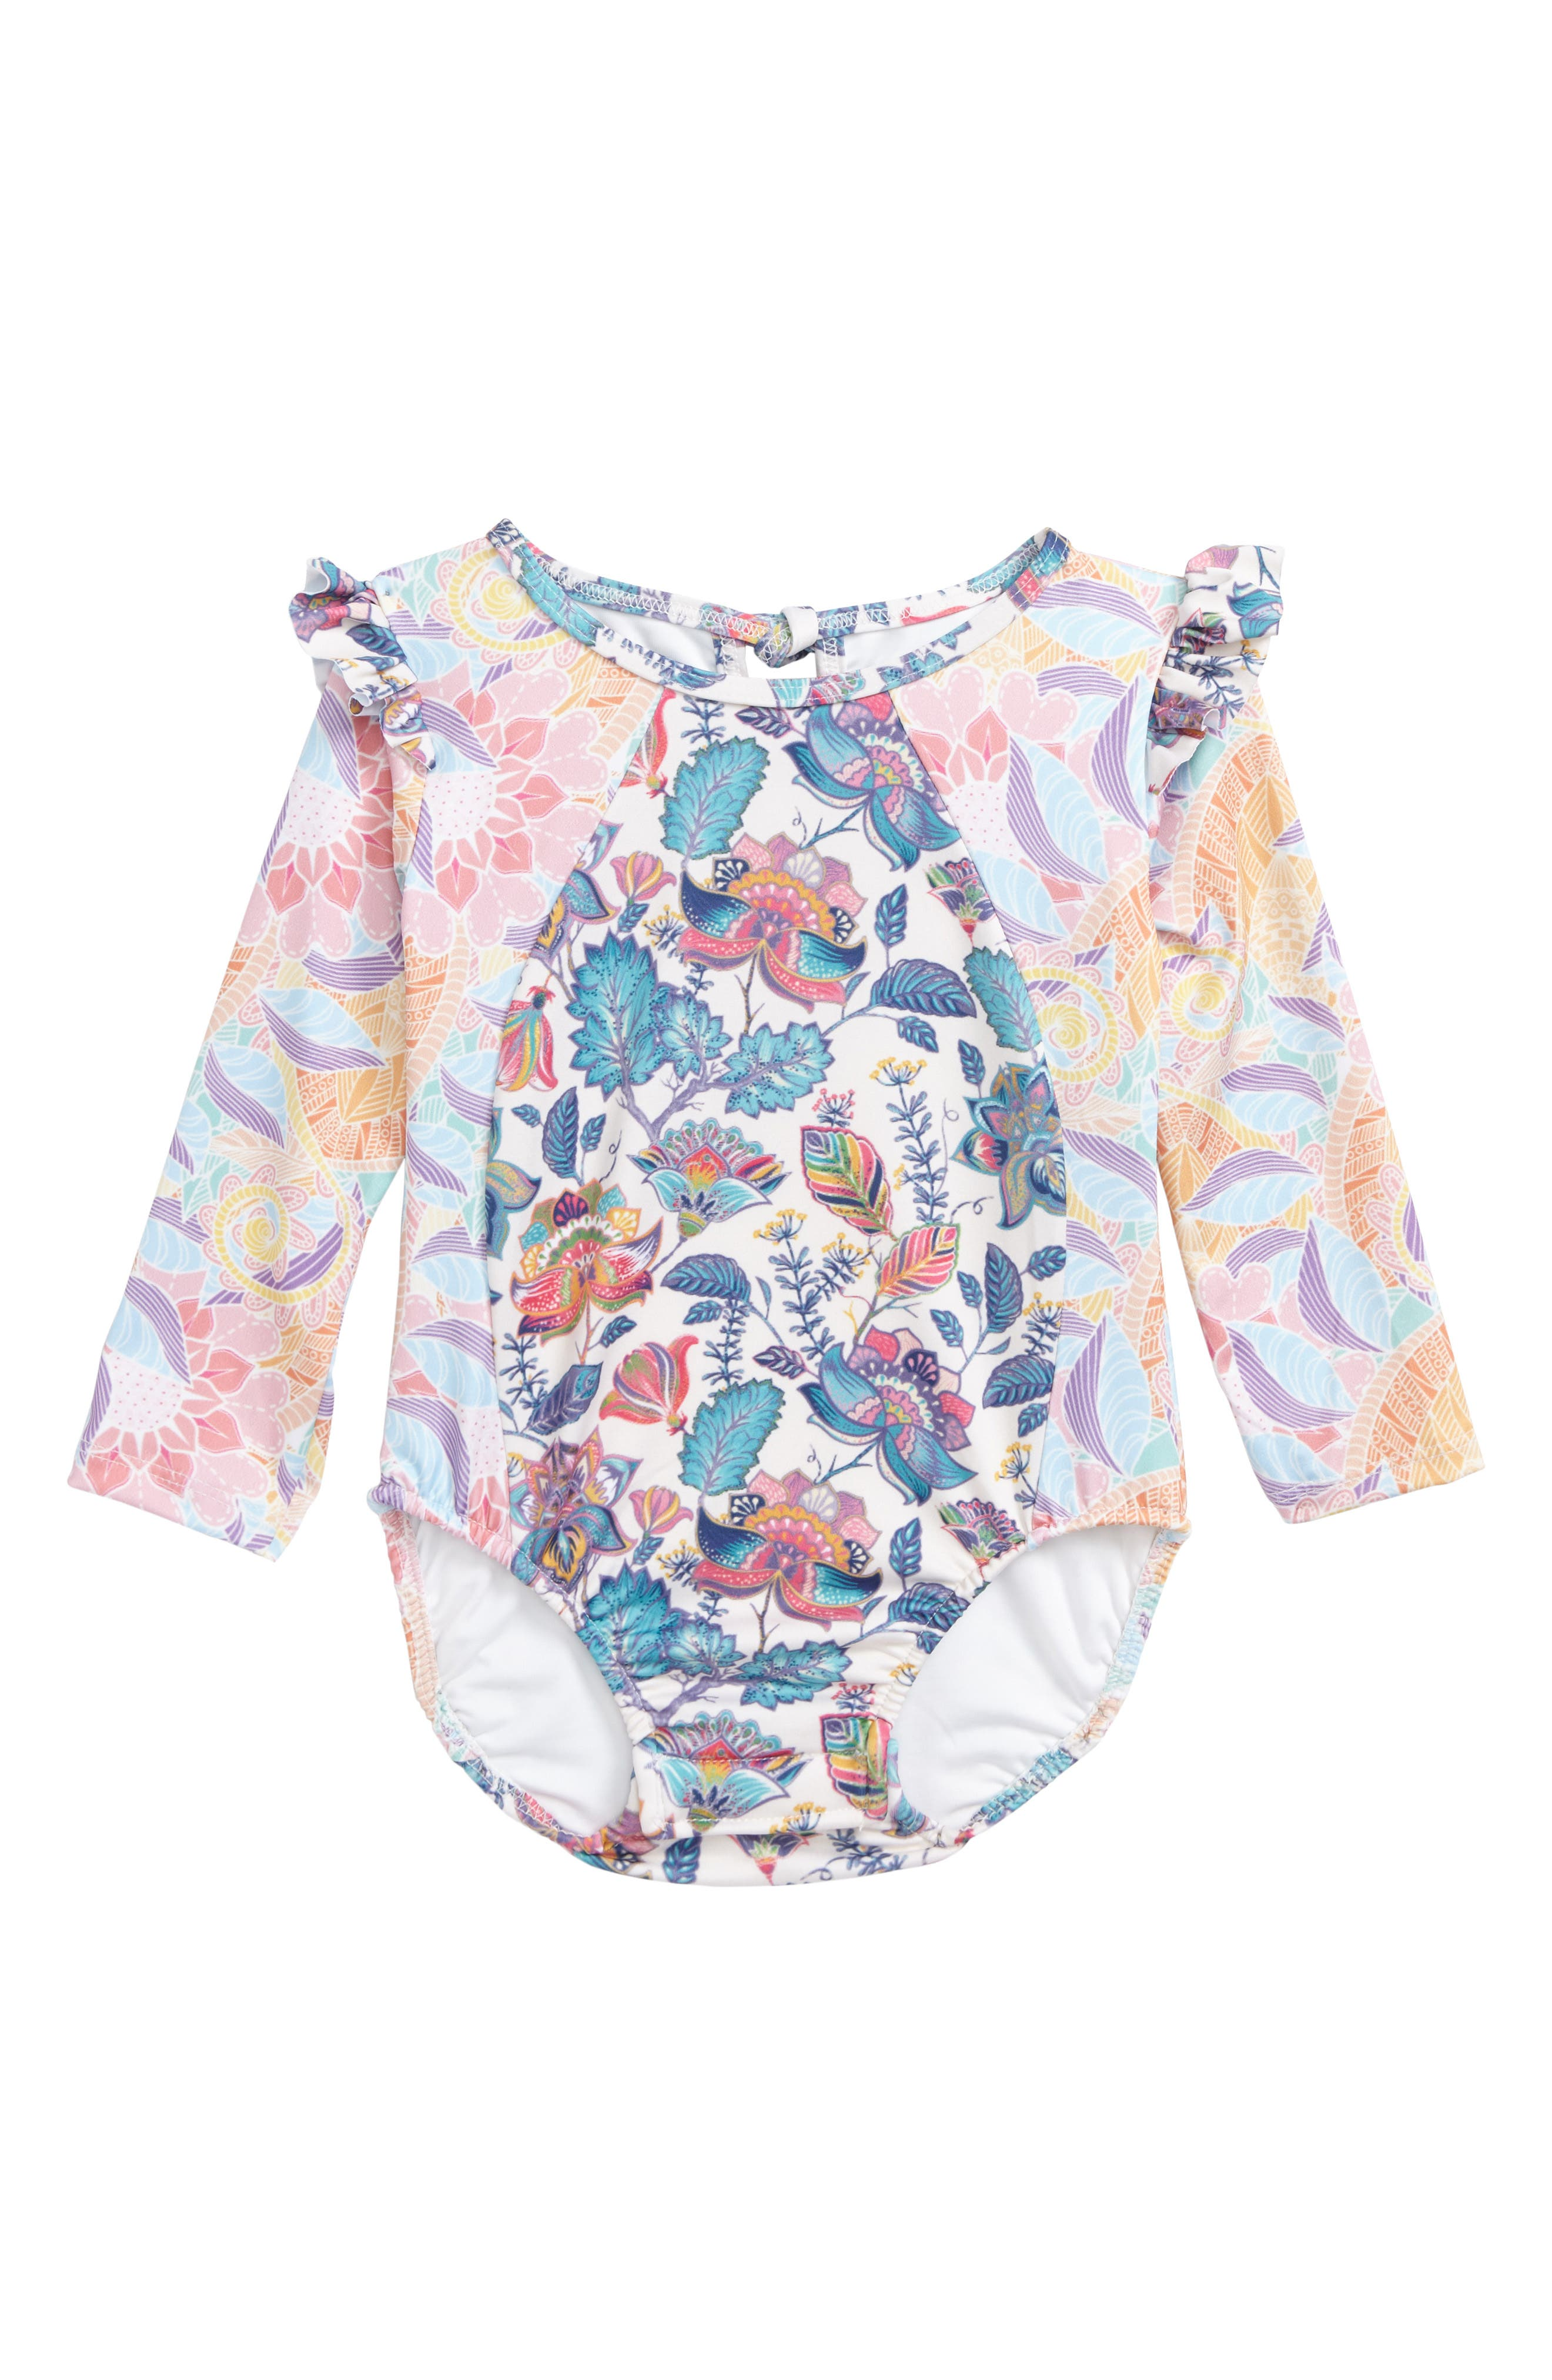 Main Image - The Salty Baby One-Piece Rashguard Swimsuit (Toddler Girls)